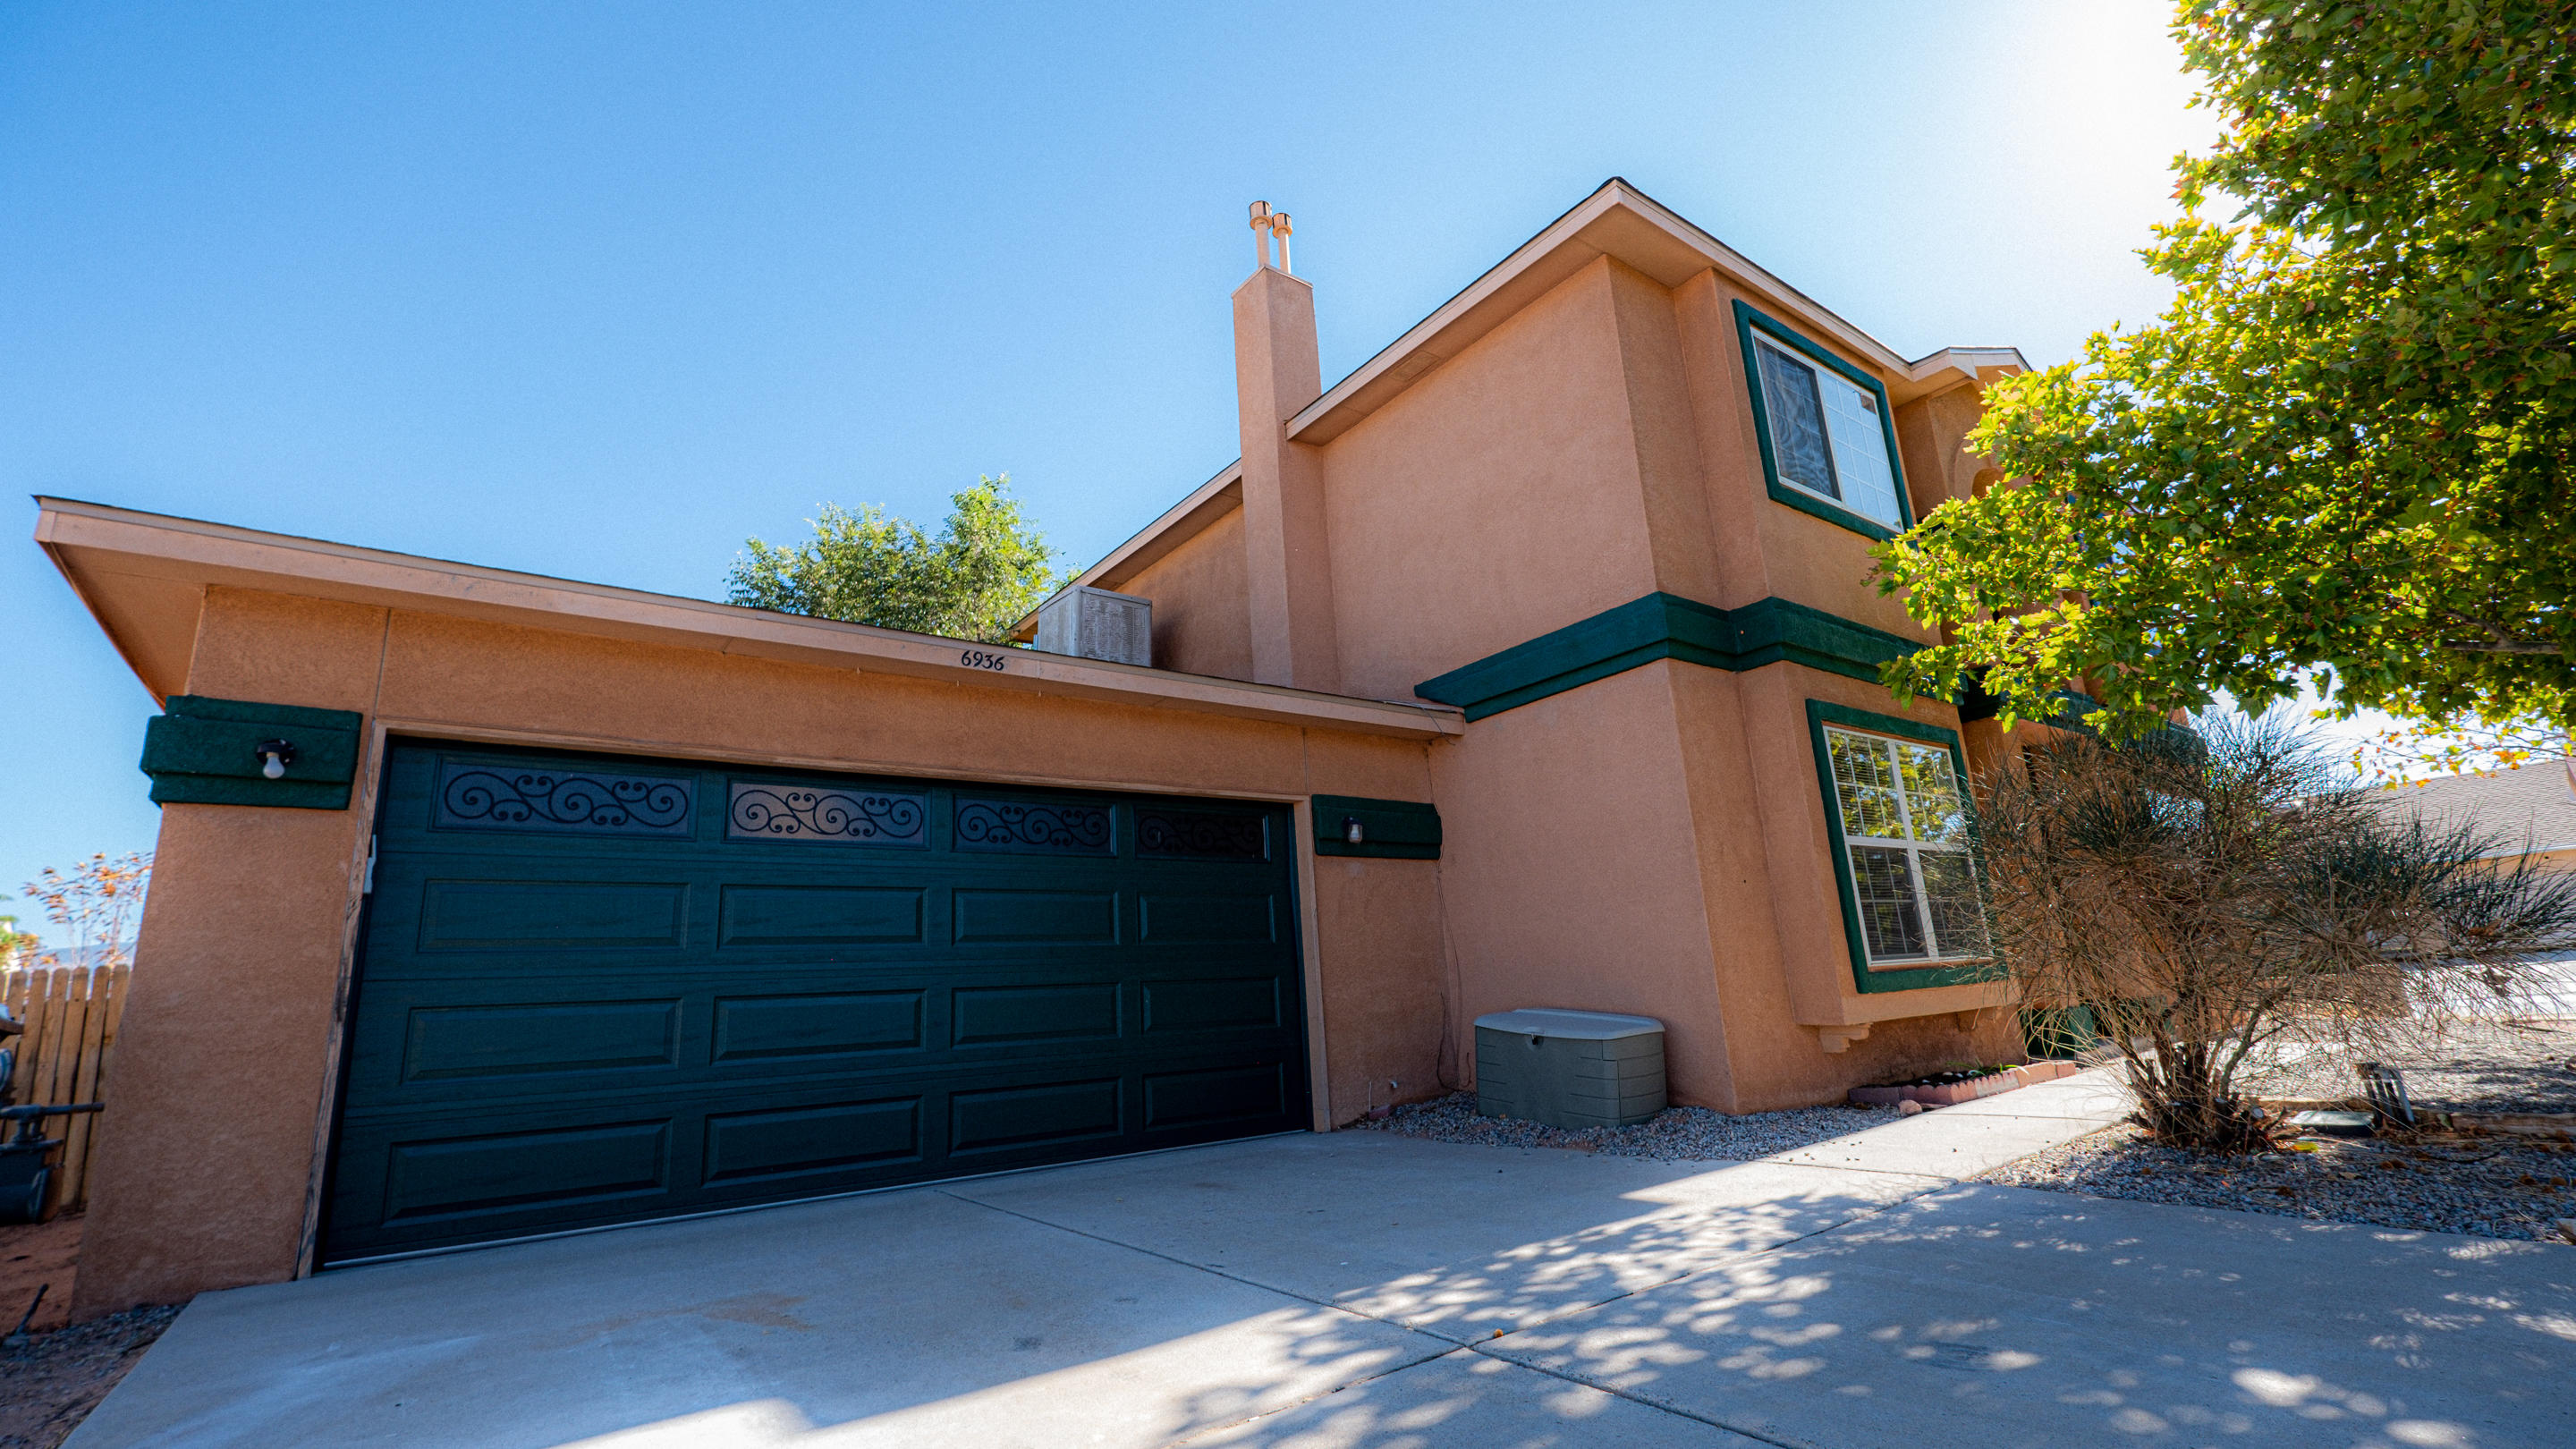 Beautiful 2 story 3 bed 3 bath home in Rio Rancho sitting on a hill with incredible views of the Sandia mountains to enjoy the sunrise and sunsets.  With a big open kitchen and the backyard is left to your imagination.  Easy access from NM 550 to travel to Alb or Santa Fe.  This home has a new roof and garage door installed in the last 2 years.  New carpet and paint put in the last month.  Solar panels were put on a little over a year ago which lowers your electricity cost.  Solar panels to convey at the offered price.